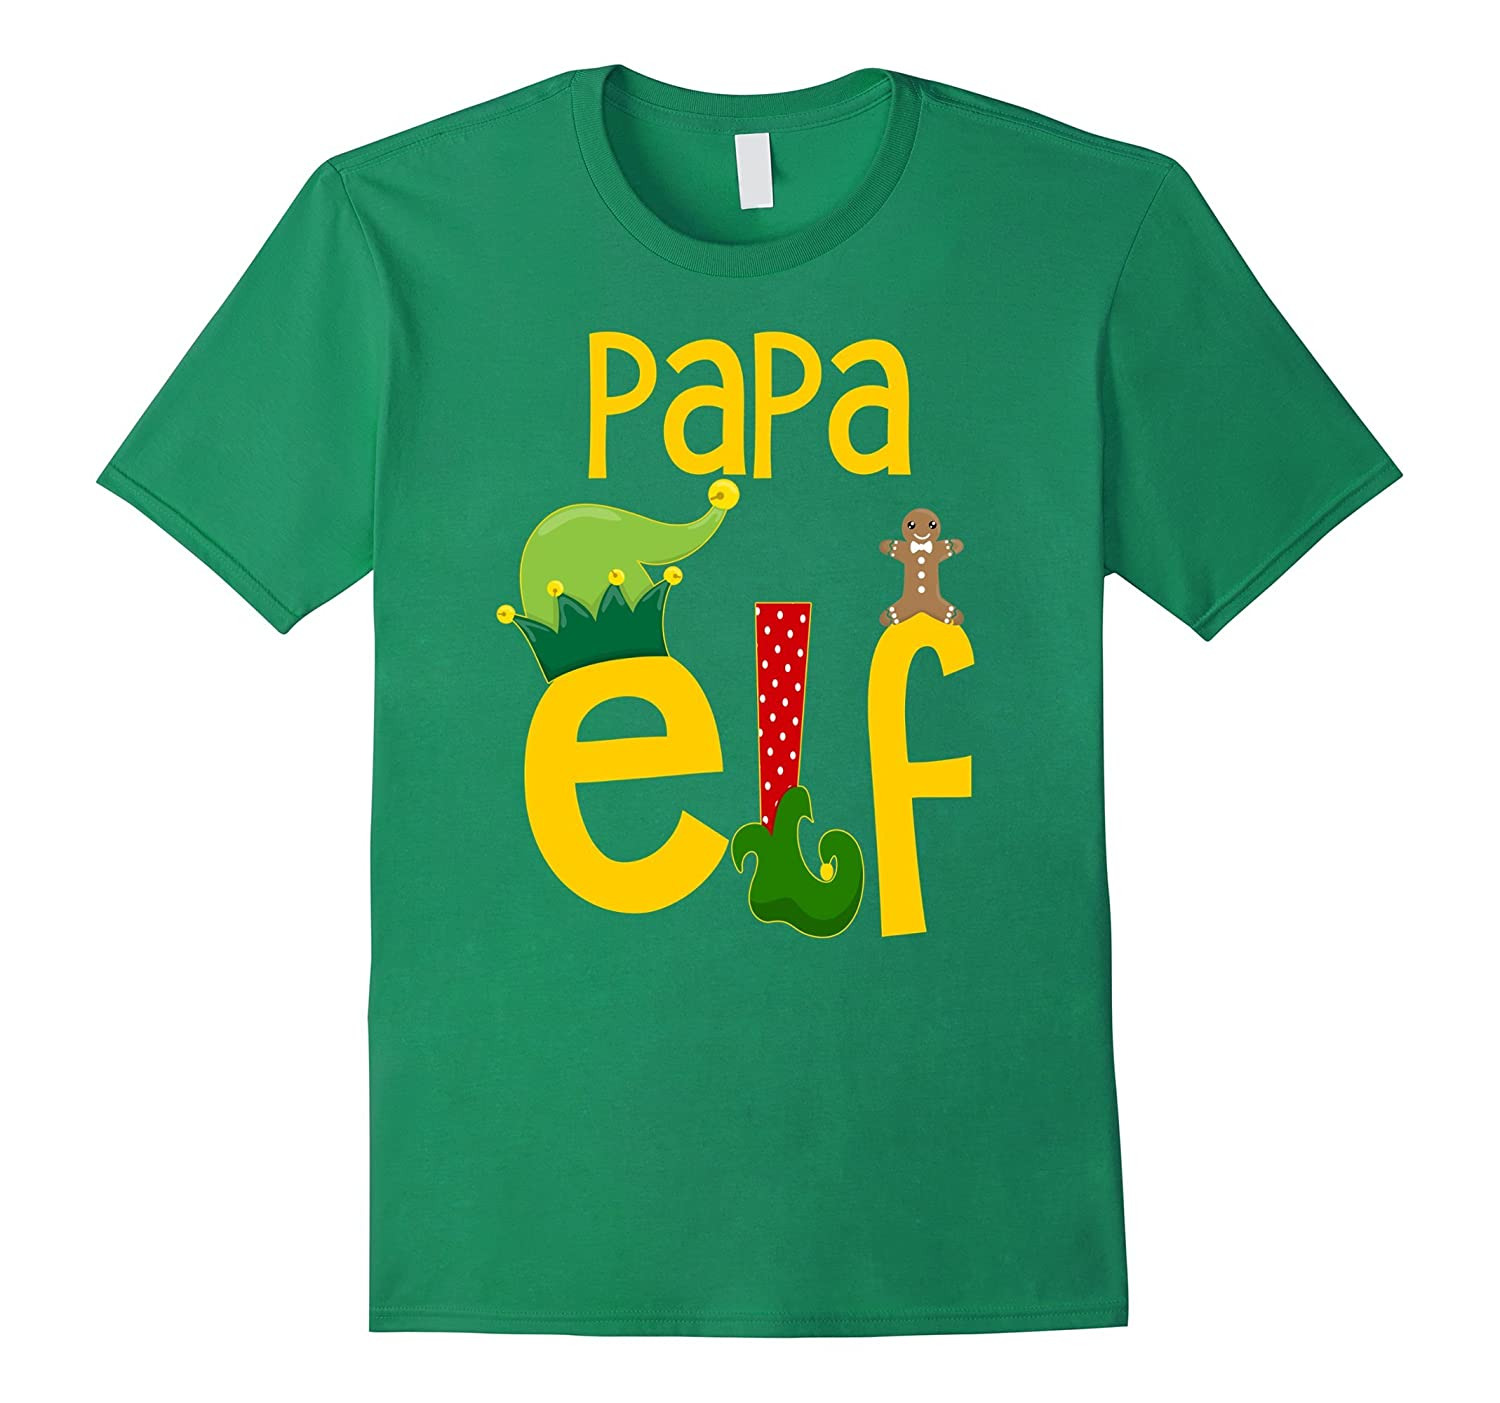 a6b51e7ef Mens Papa Elf Dad Funny Christmas T-Shirt Matching Family Shirts-ANZ ...